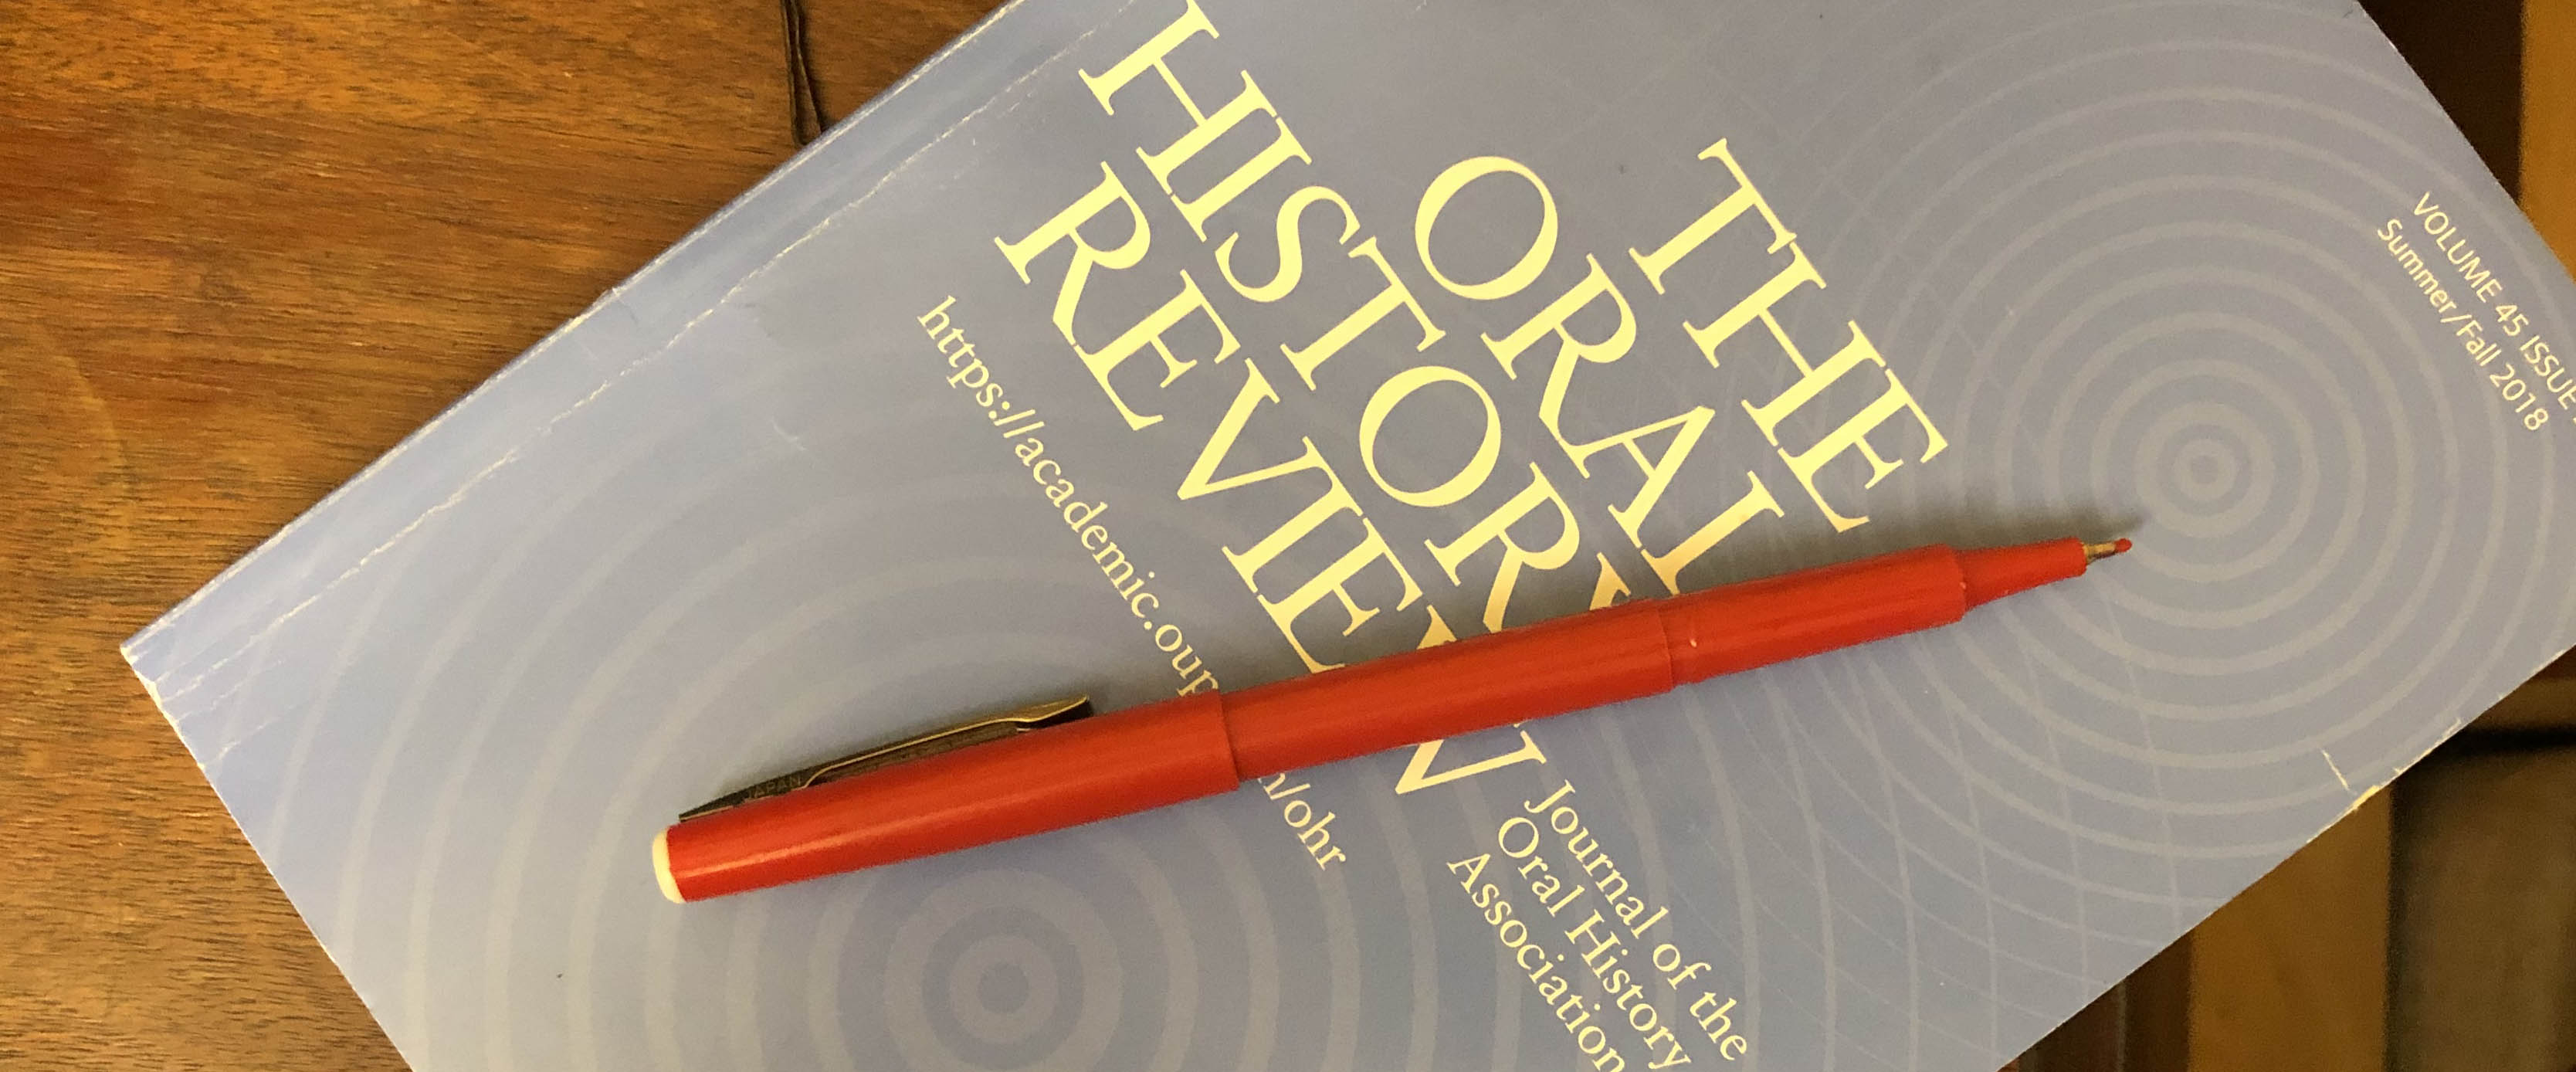 Oral History Review | The blog of the journal of record for